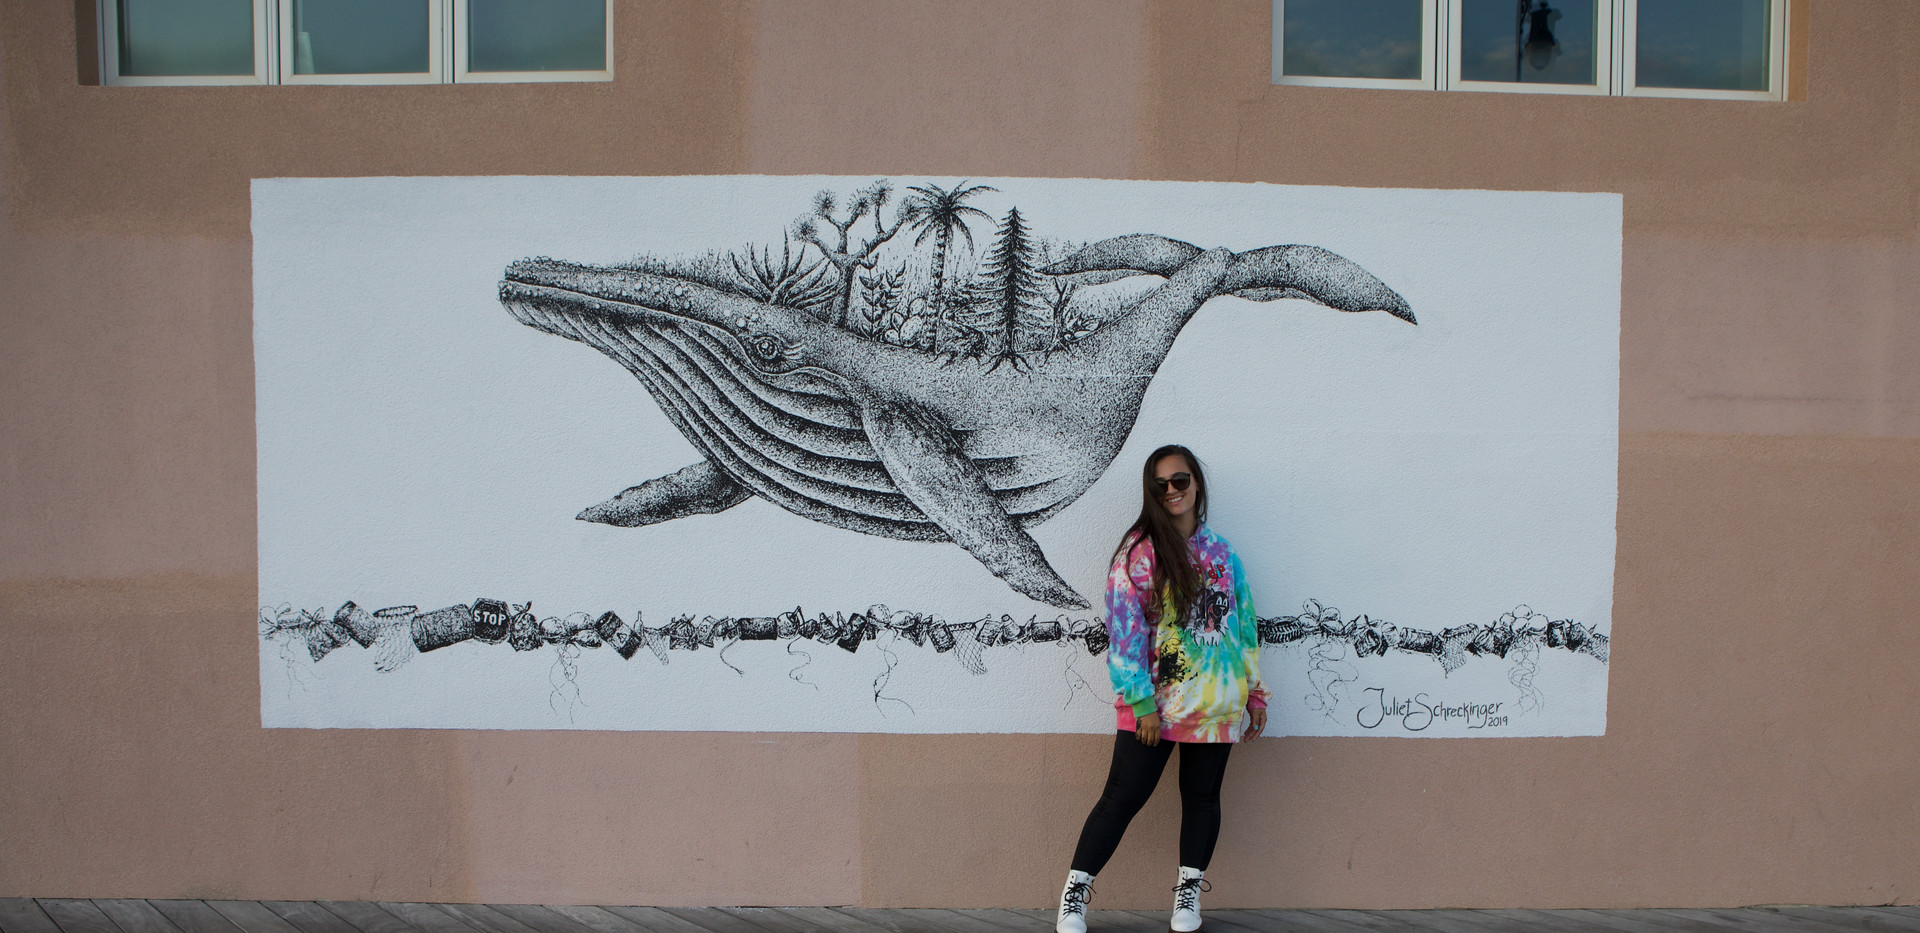 The finished mural